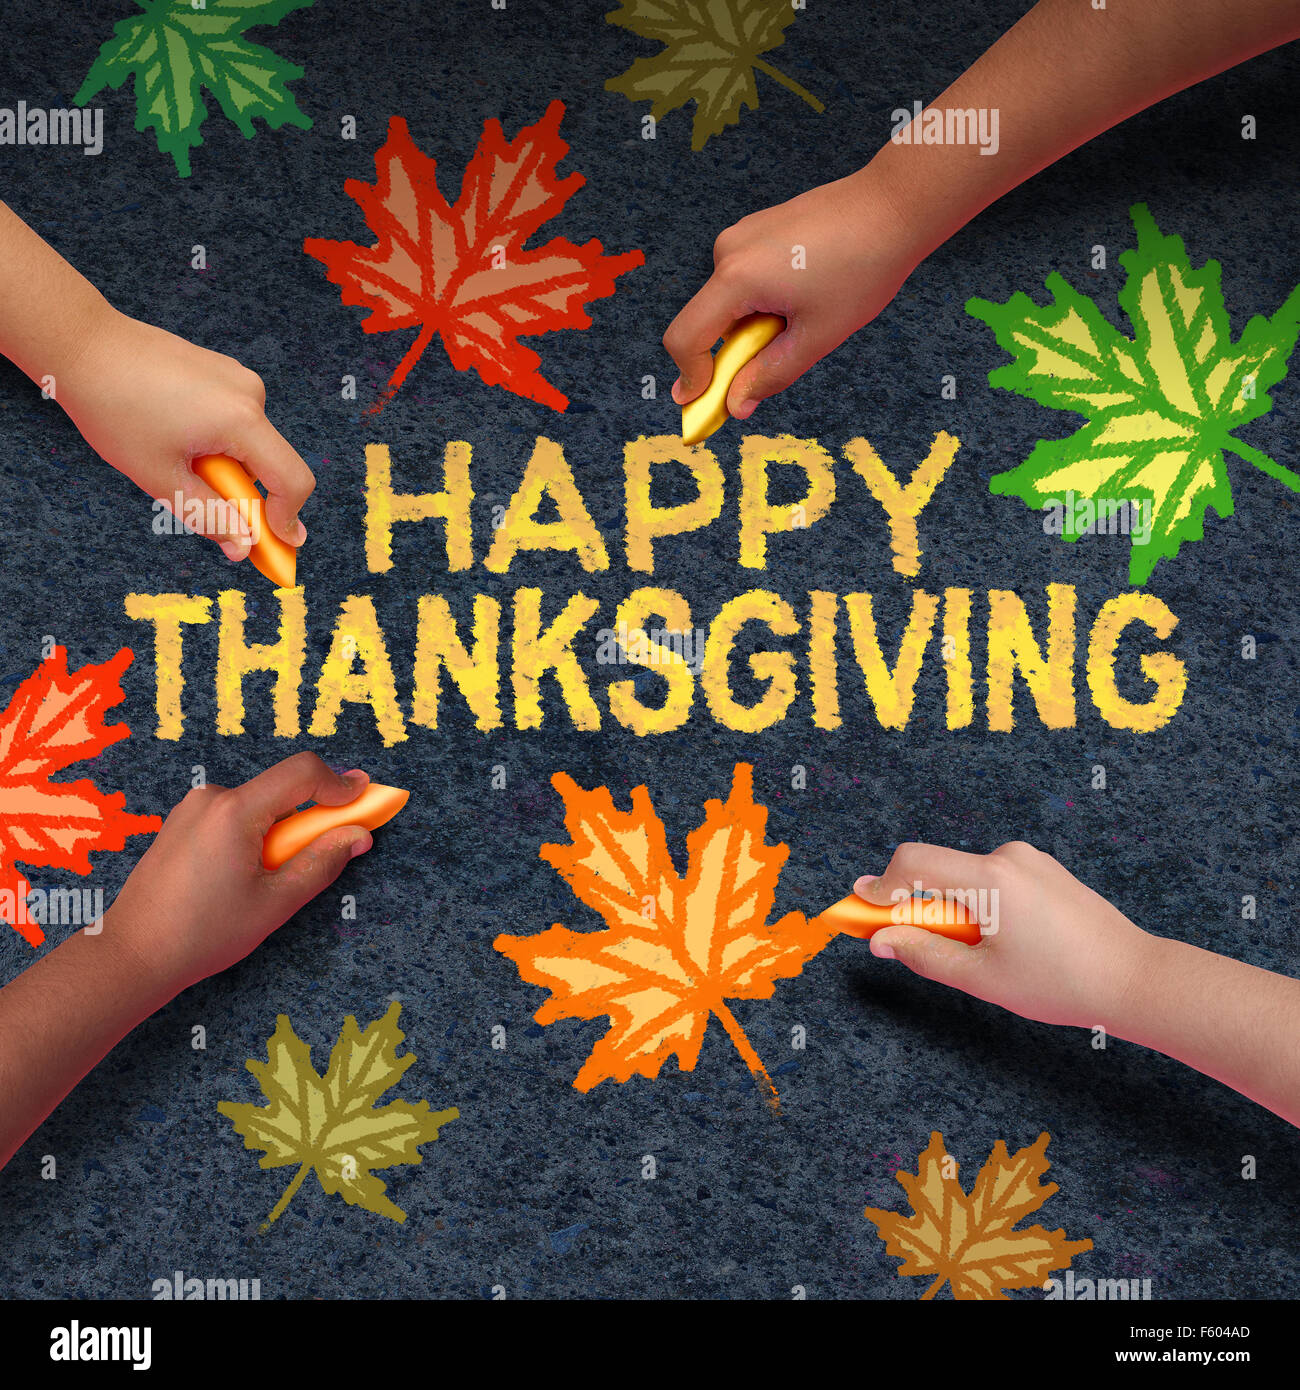 Happy thanksgiving day concept as a group of diverse people drawing using chalk on ashpalt the word for traditional - Stock Image